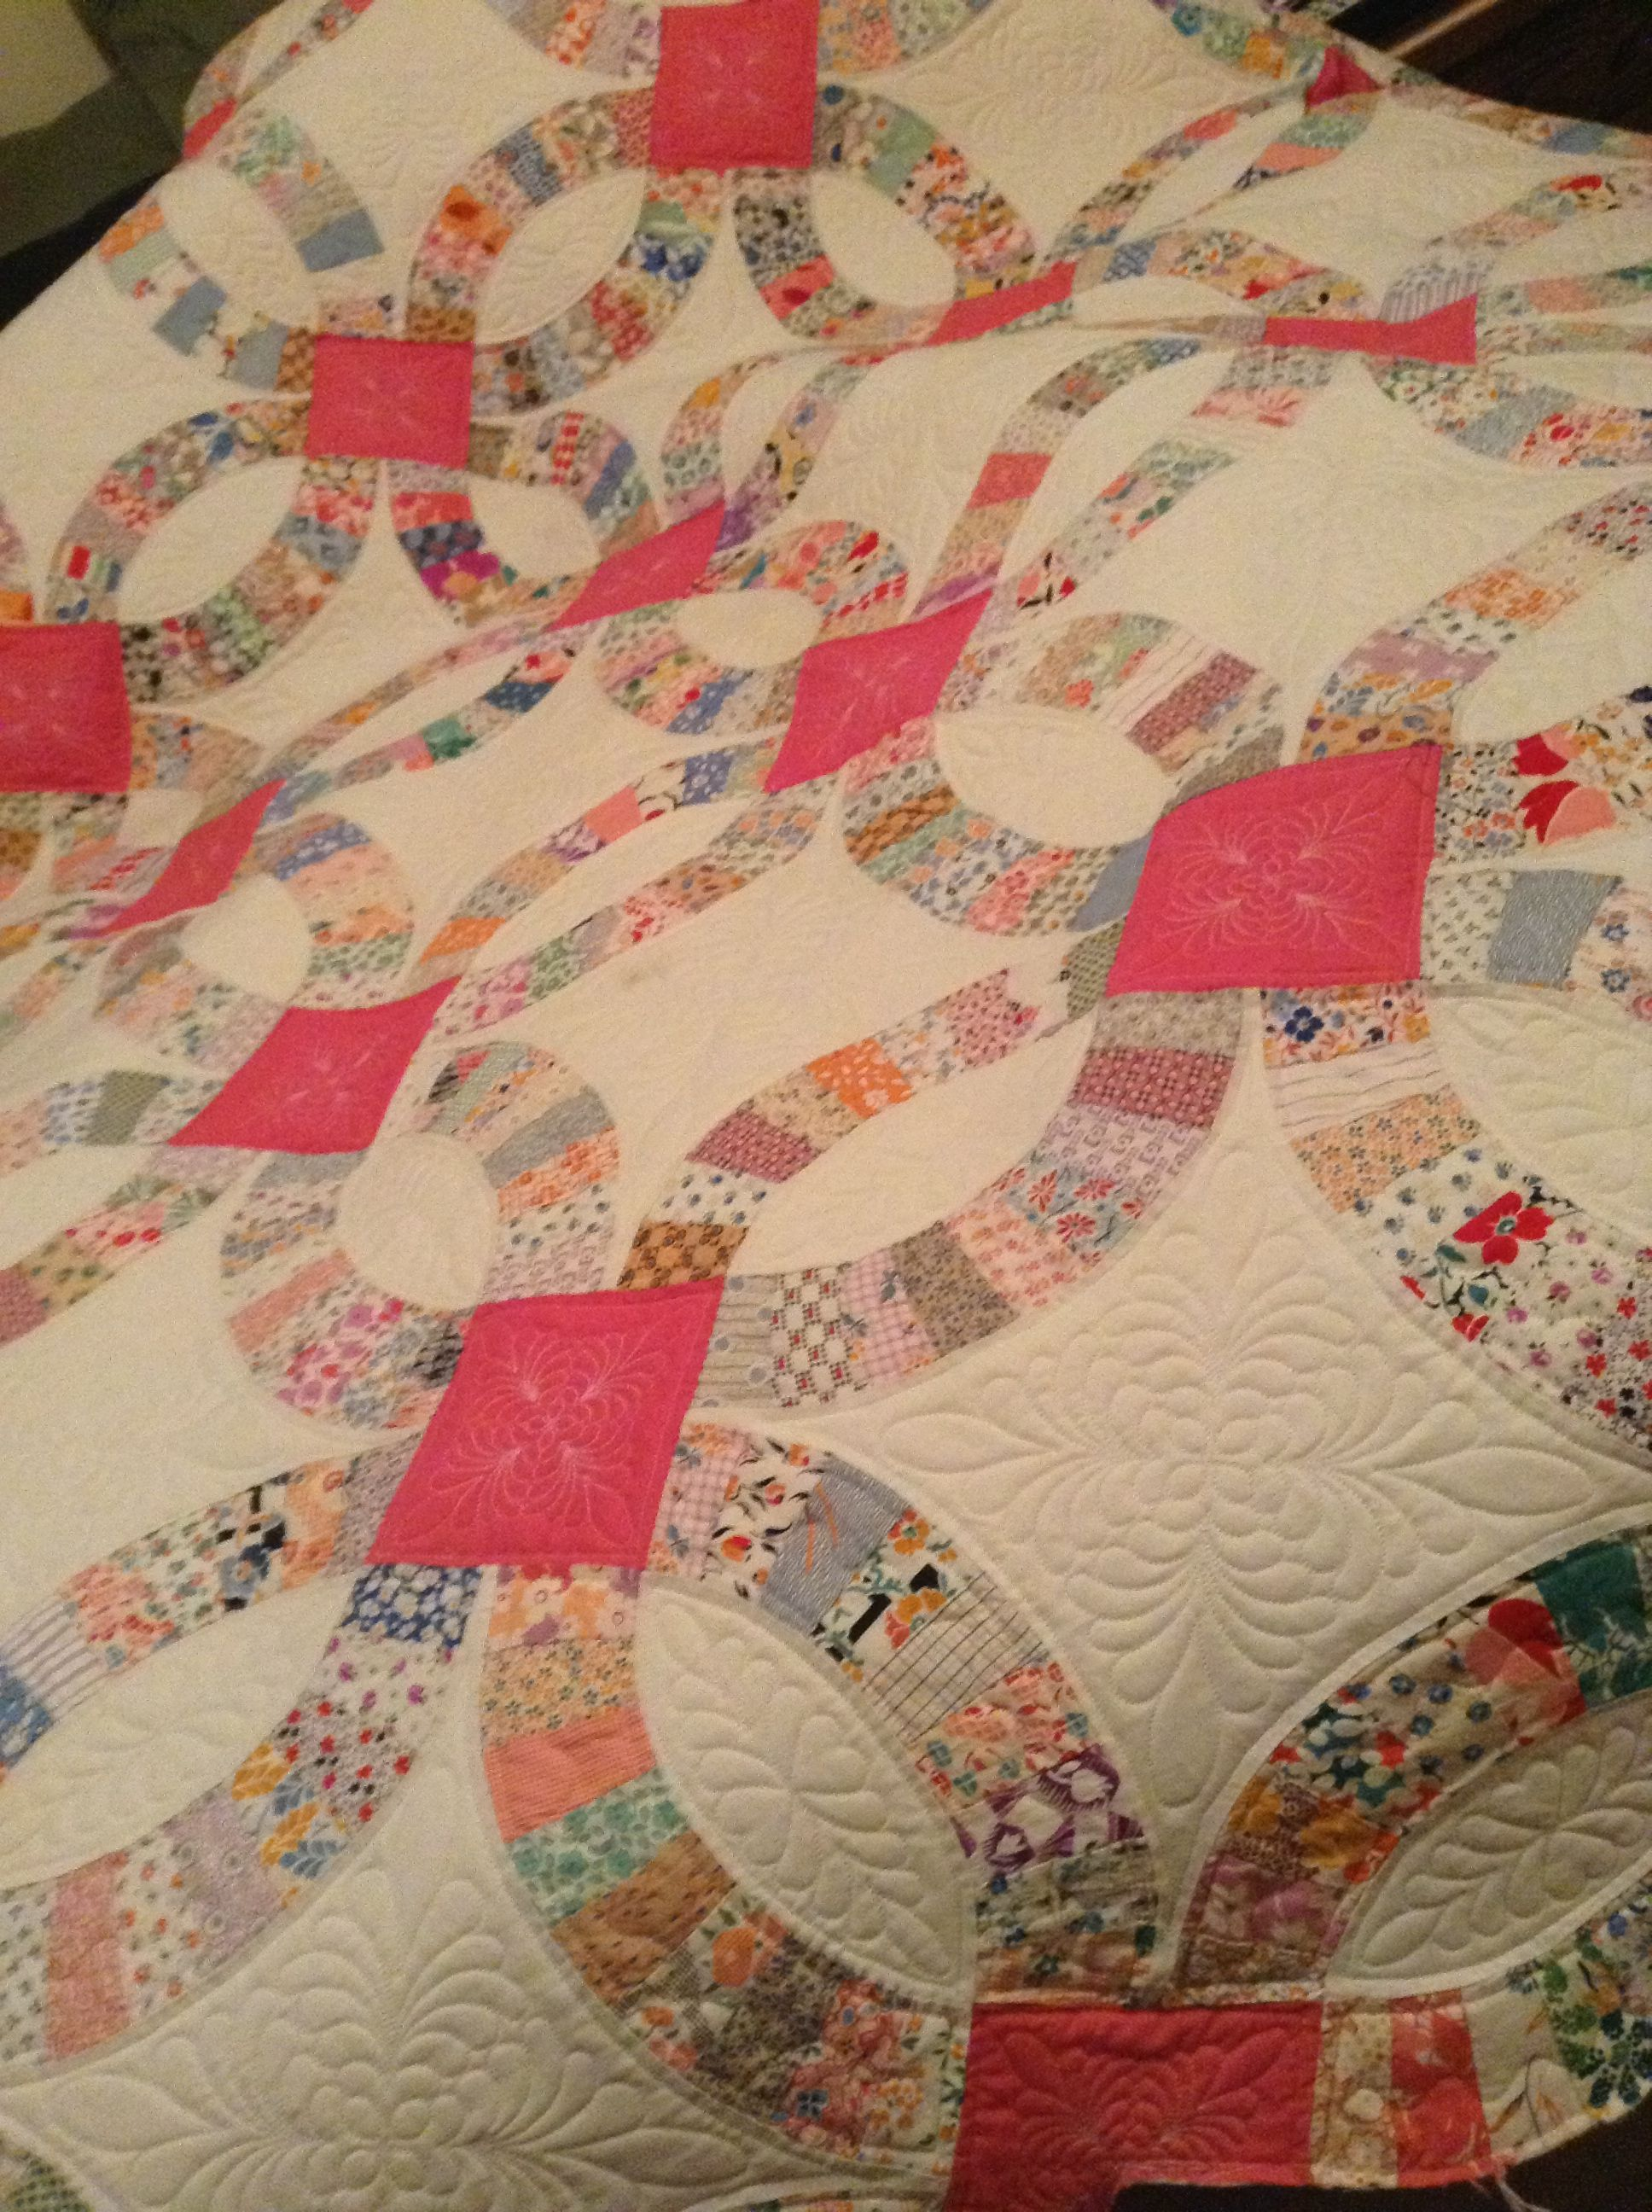 Pin By Debbie Przymus On Wedding Ring Quilts Quilting Designs Patterns Double Wedding Ring Quilt Quilts